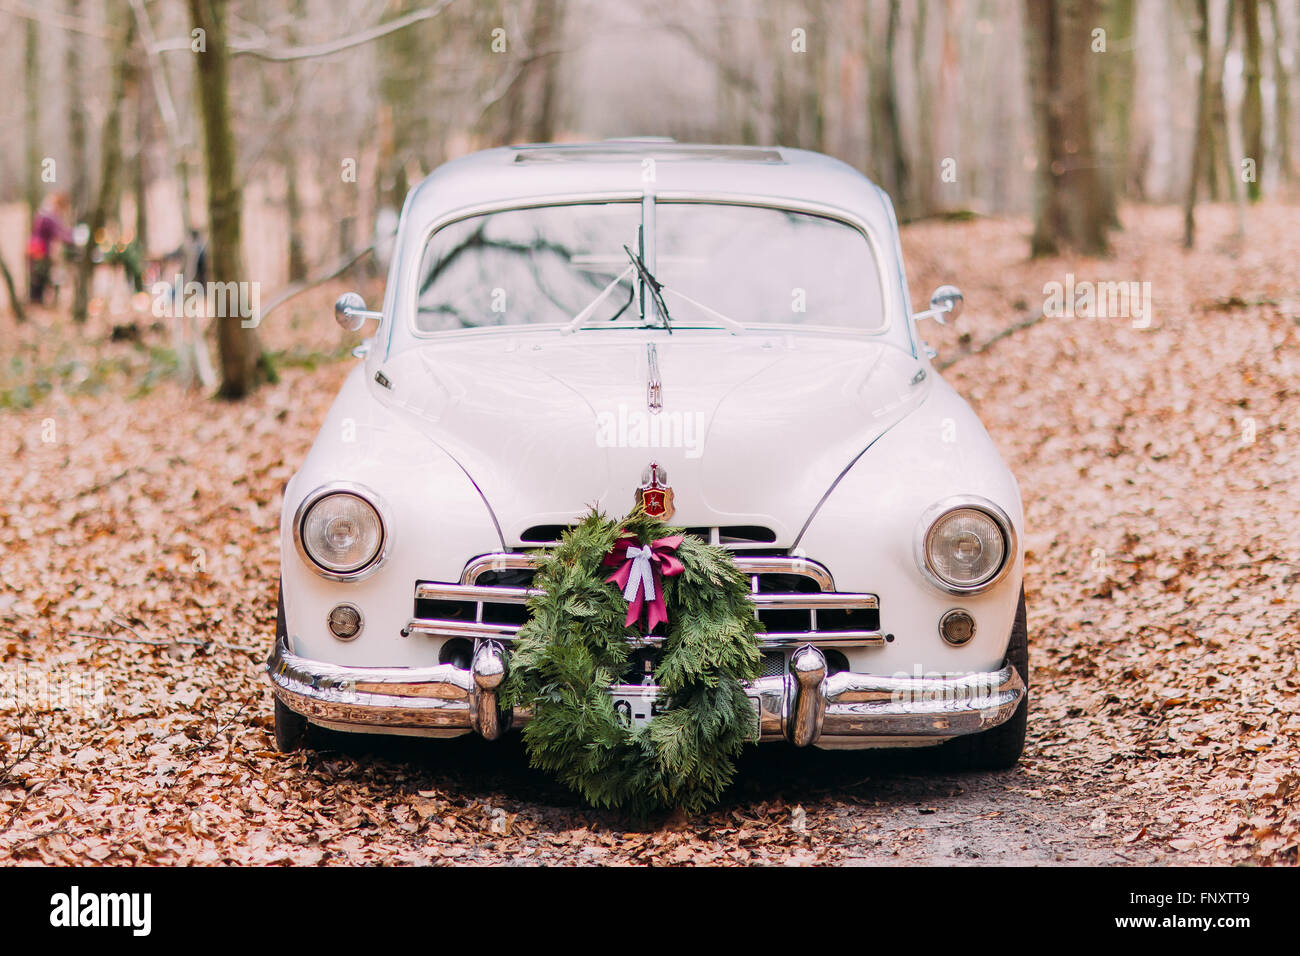 White vintage wedding car decorated with wreath in the autumn forest ...